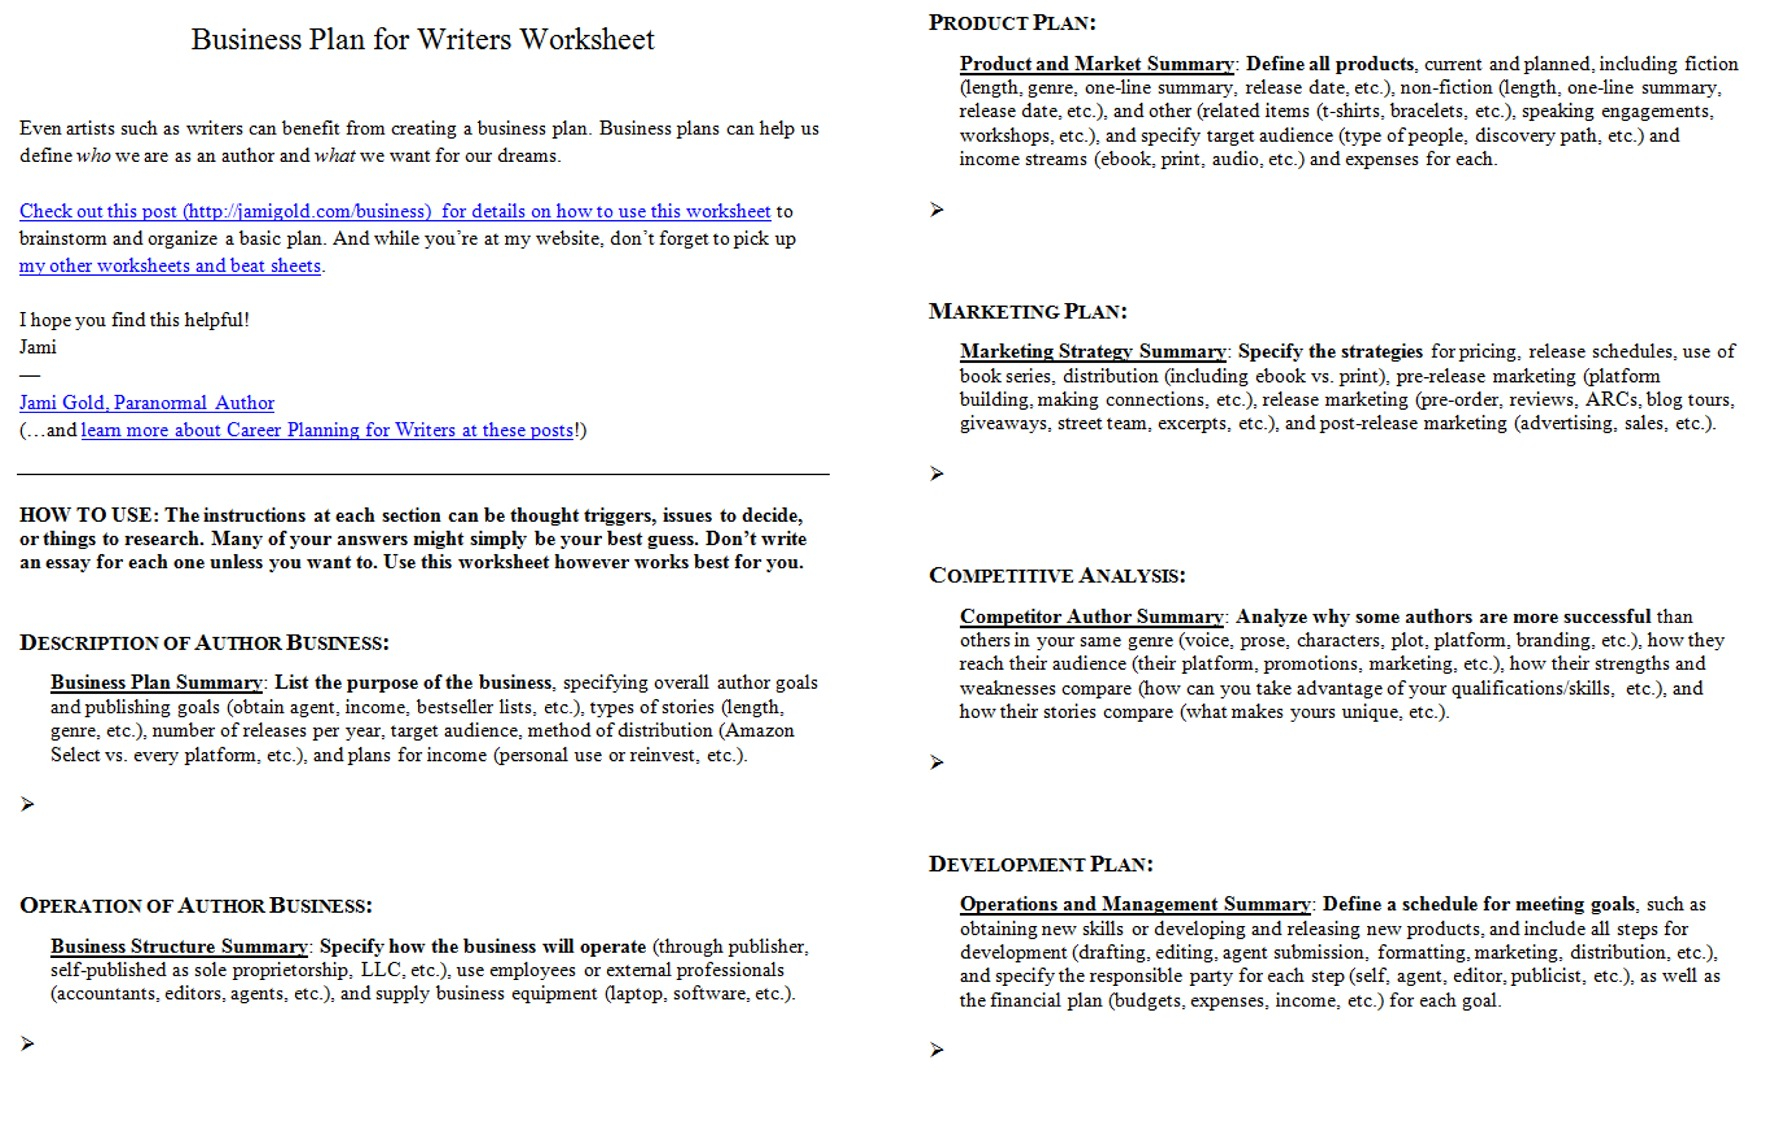 Aldiablosus  Prepossessing Worksheets For Writers  Jami Gold Paranormal Author With Interesting Screen Shot Of Both Pages Of The Business Plan For Writers Worksheet With Cute Child Support Computation Worksheet Also Multiplying Fractions And Whole Numbers Worksheets In Addition Have Has Worksheets And Ice Breaker Worksheets As Well As Vocabulary Worksheet Pdf Additionally Math Exponents Worksheet From Jamigoldcom With Aldiablosus  Interesting Worksheets For Writers  Jami Gold Paranormal Author With Cute Screen Shot Of Both Pages Of The Business Plan For Writers Worksheet And Prepossessing Child Support Computation Worksheet Also Multiplying Fractions And Whole Numbers Worksheets In Addition Have Has Worksheets From Jamigoldcom